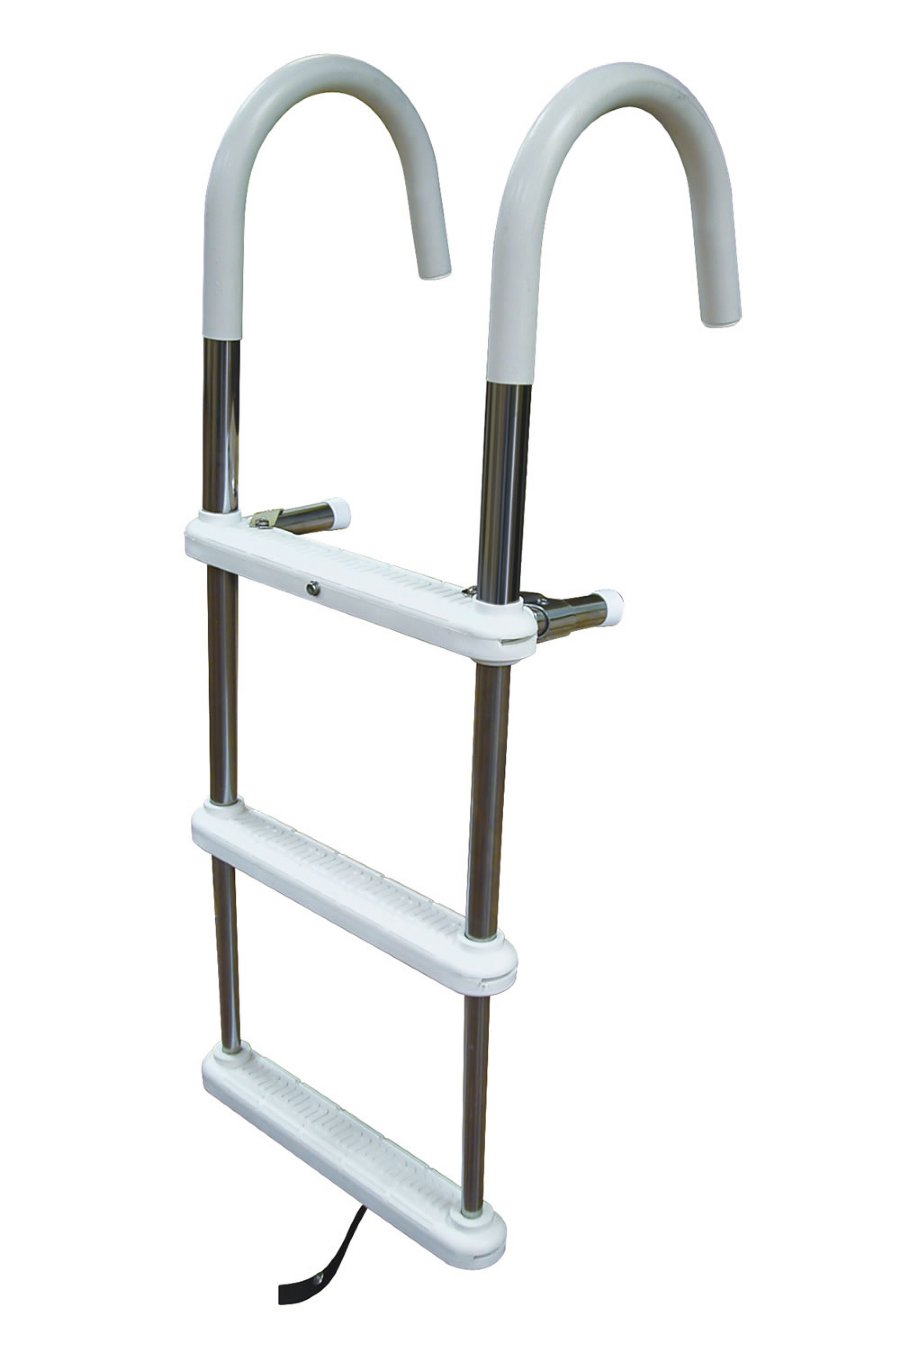 3 Step Stainless Steel Gunwale Hook Ladders